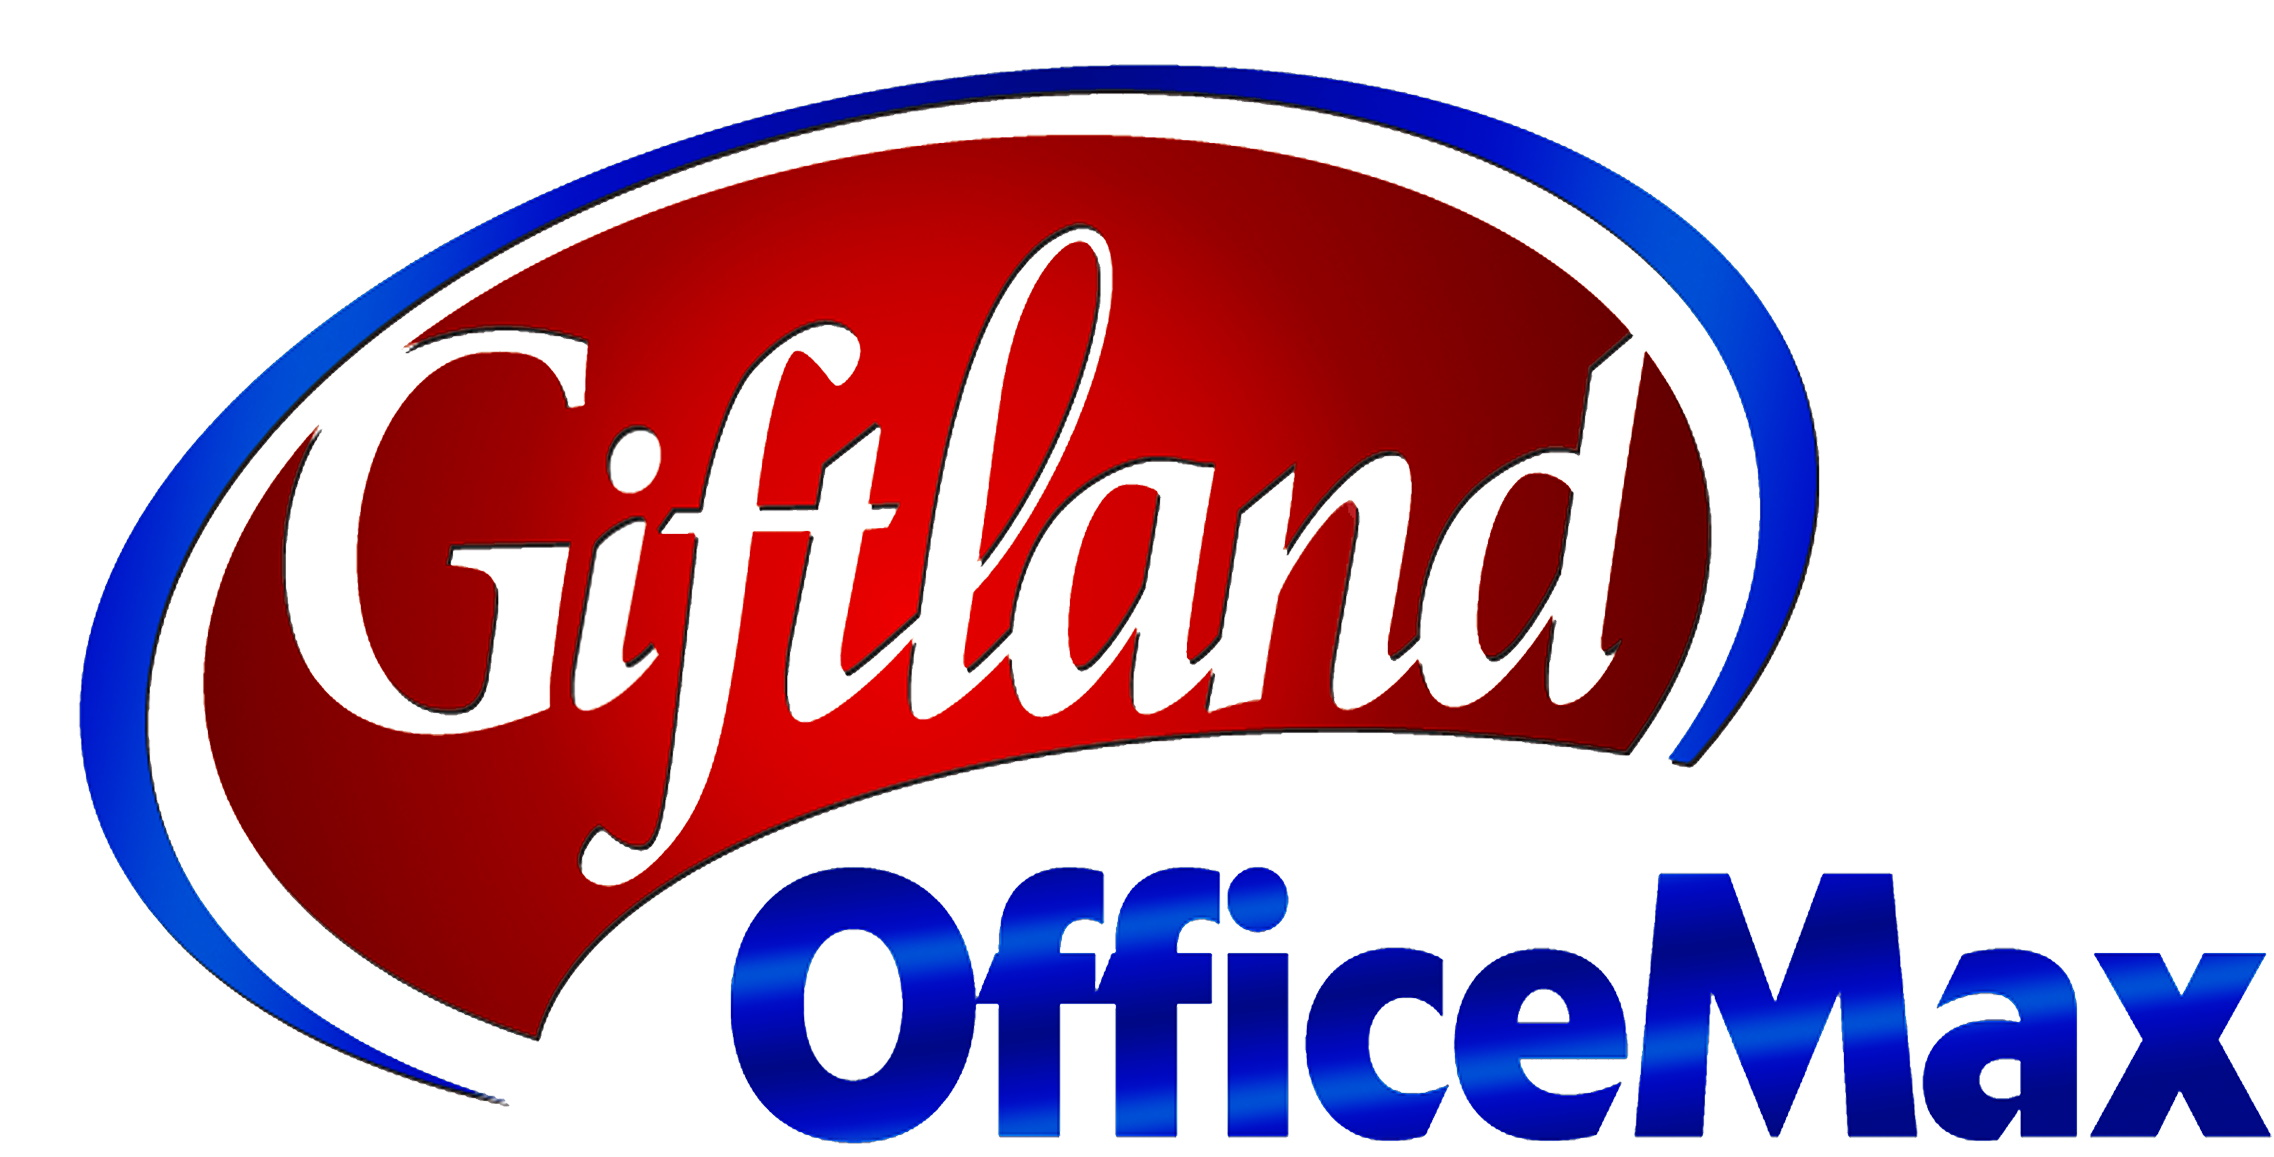 Giftland OfficeMax Support Help Center home page